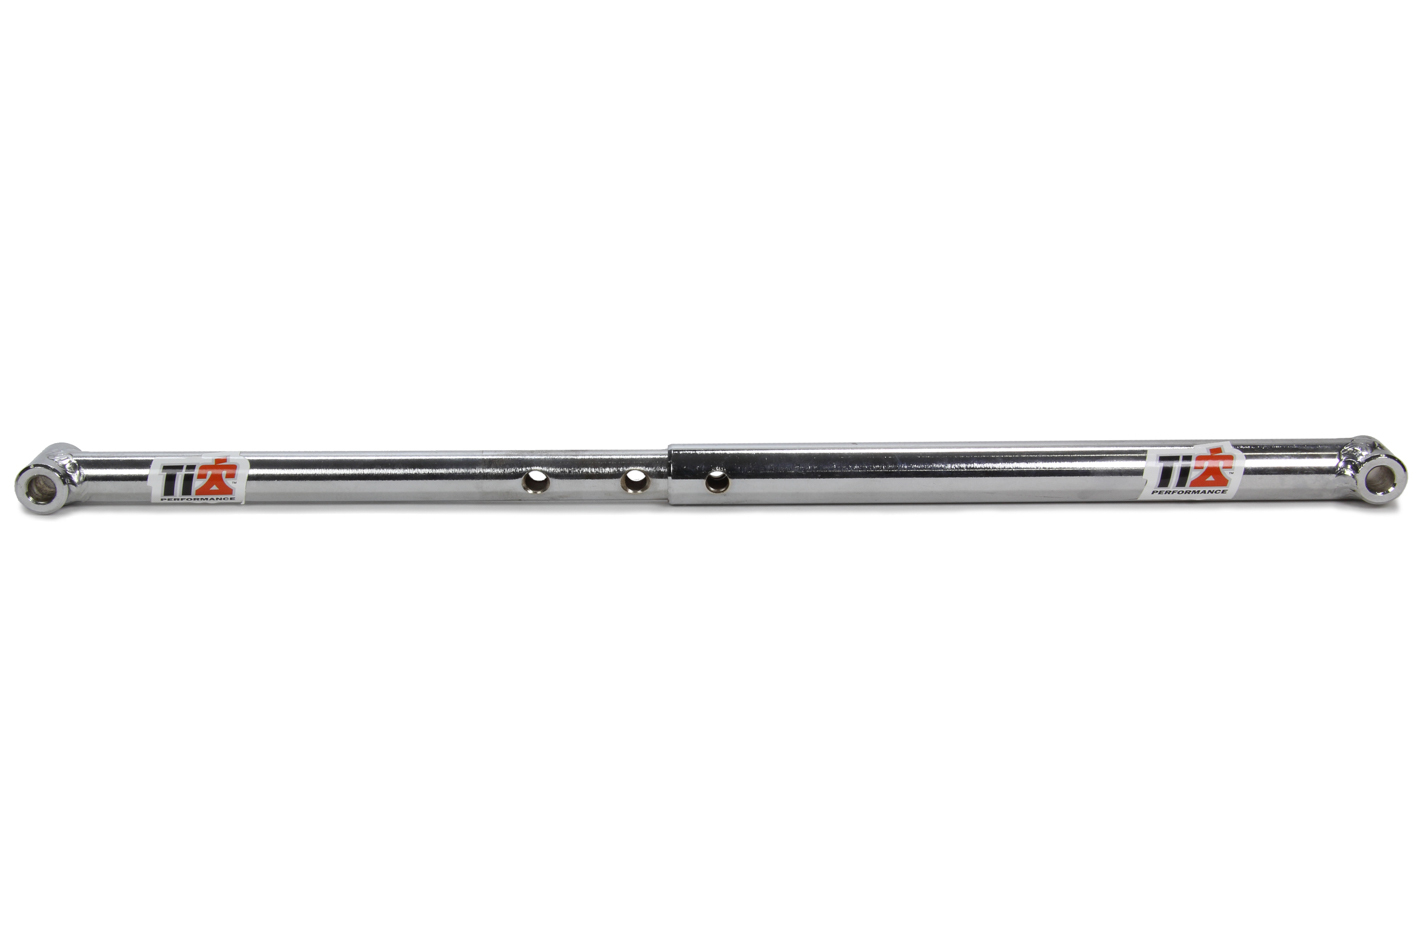 Ti22 PERFORMANCE 600 Manual Wing Slider Chrome 14in-21in P/N -TIP3775